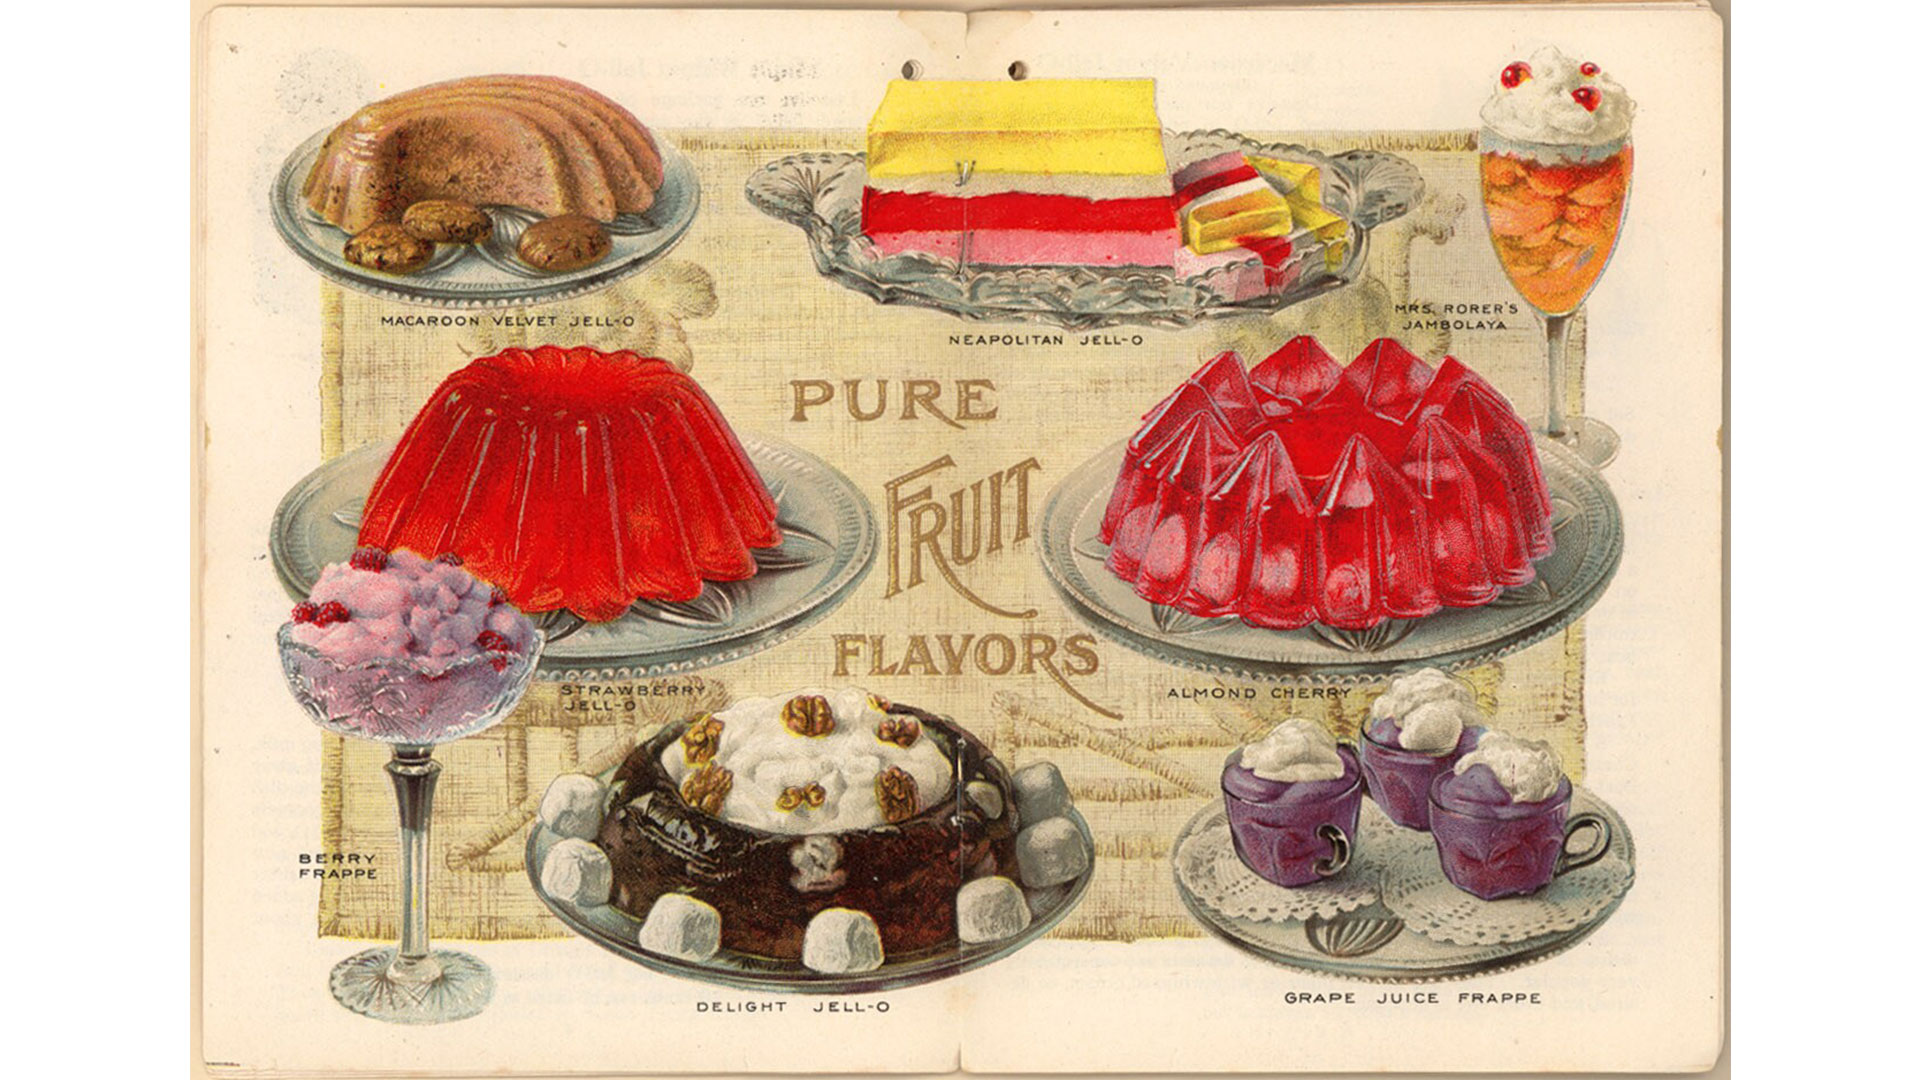 You Can Download 82 Amazing Vintage Cookbooks for Free